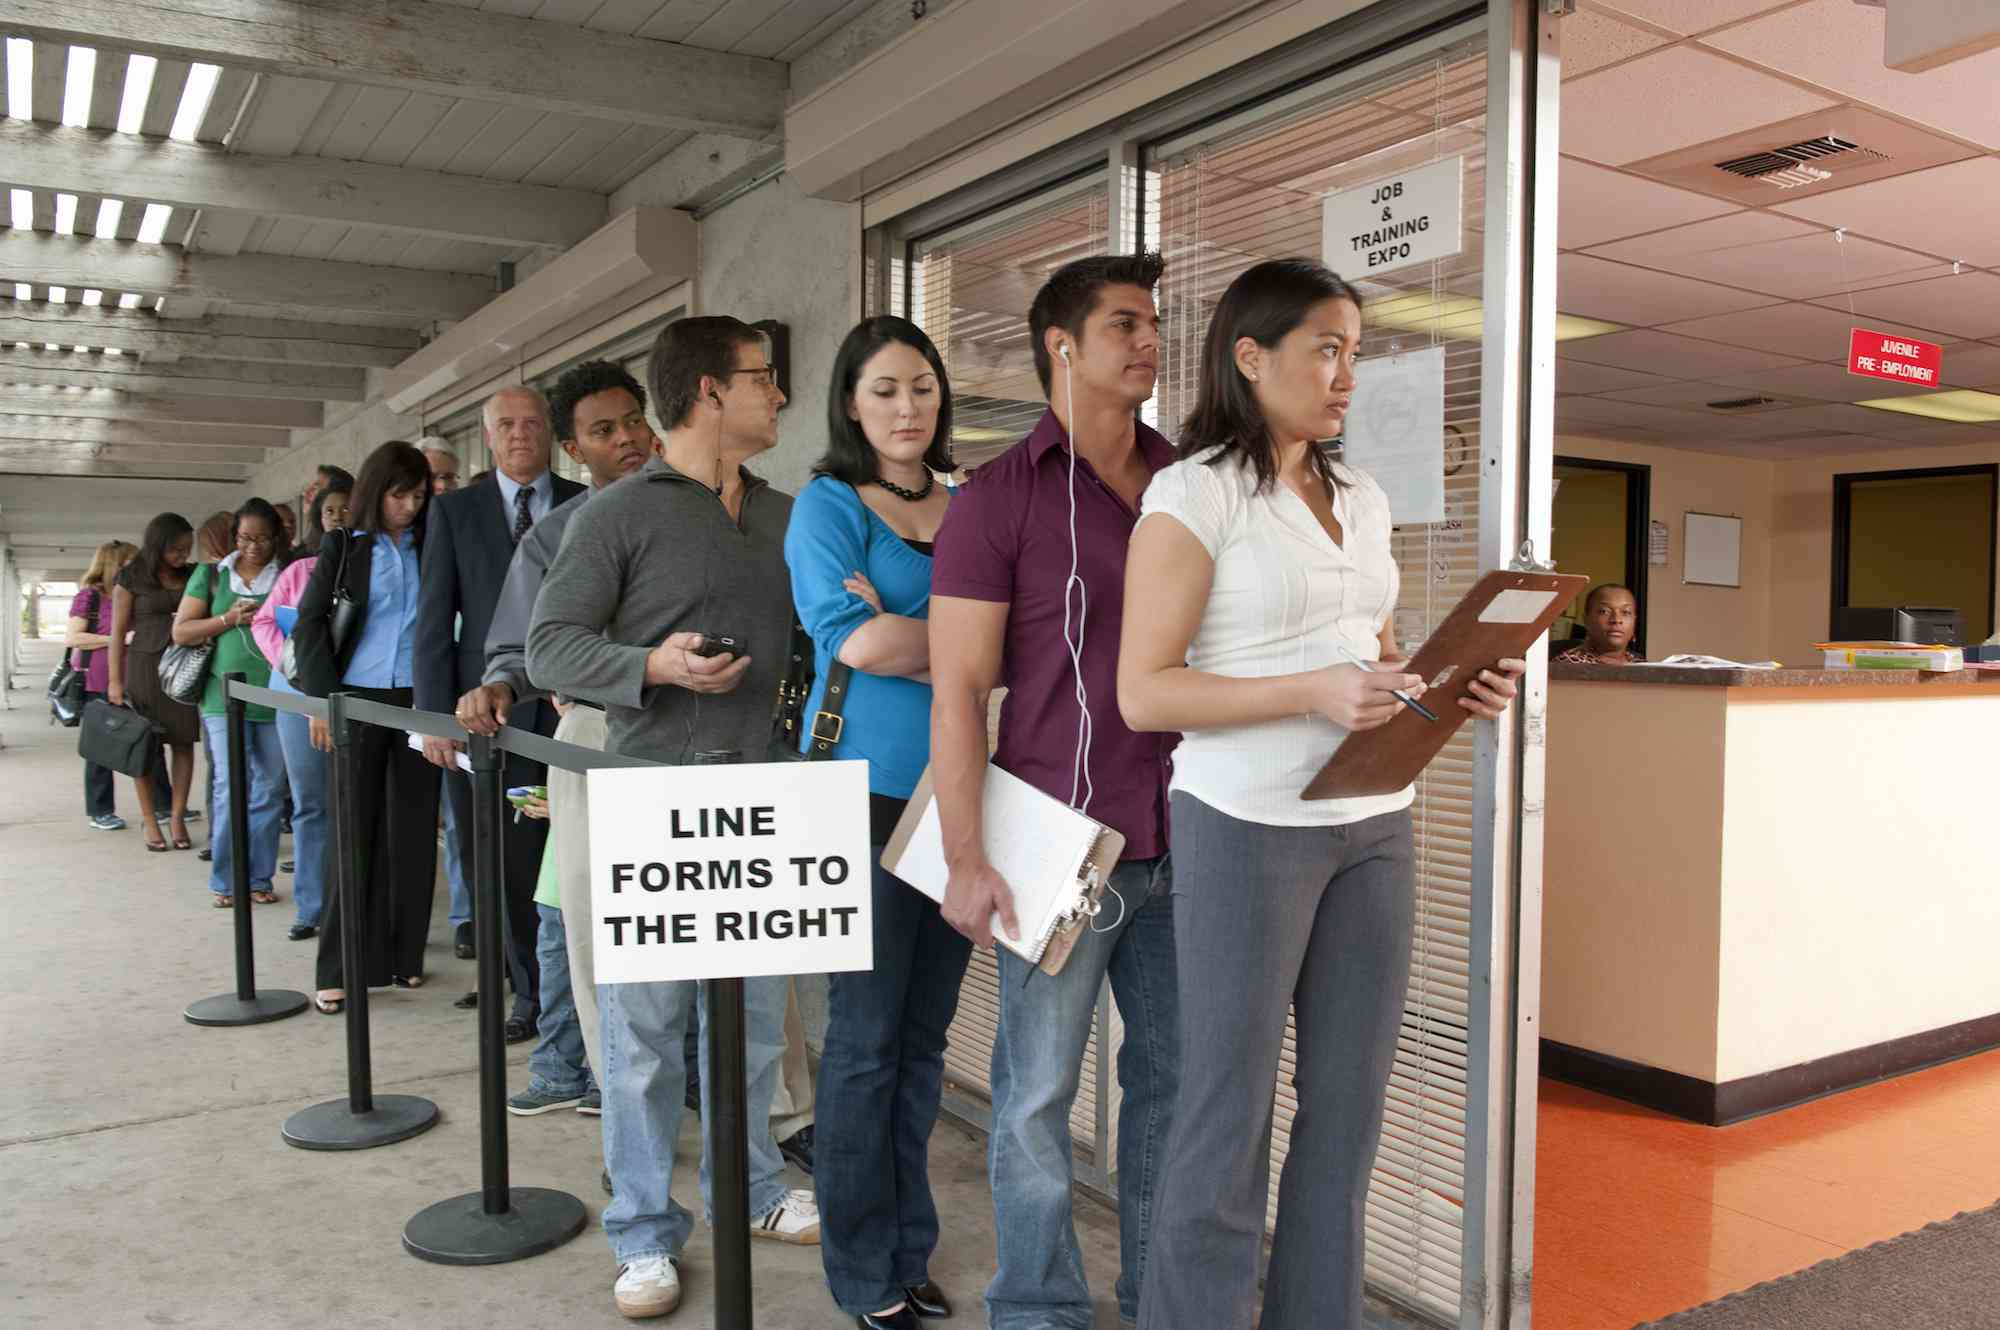 People standing in line at Job and Training Fair